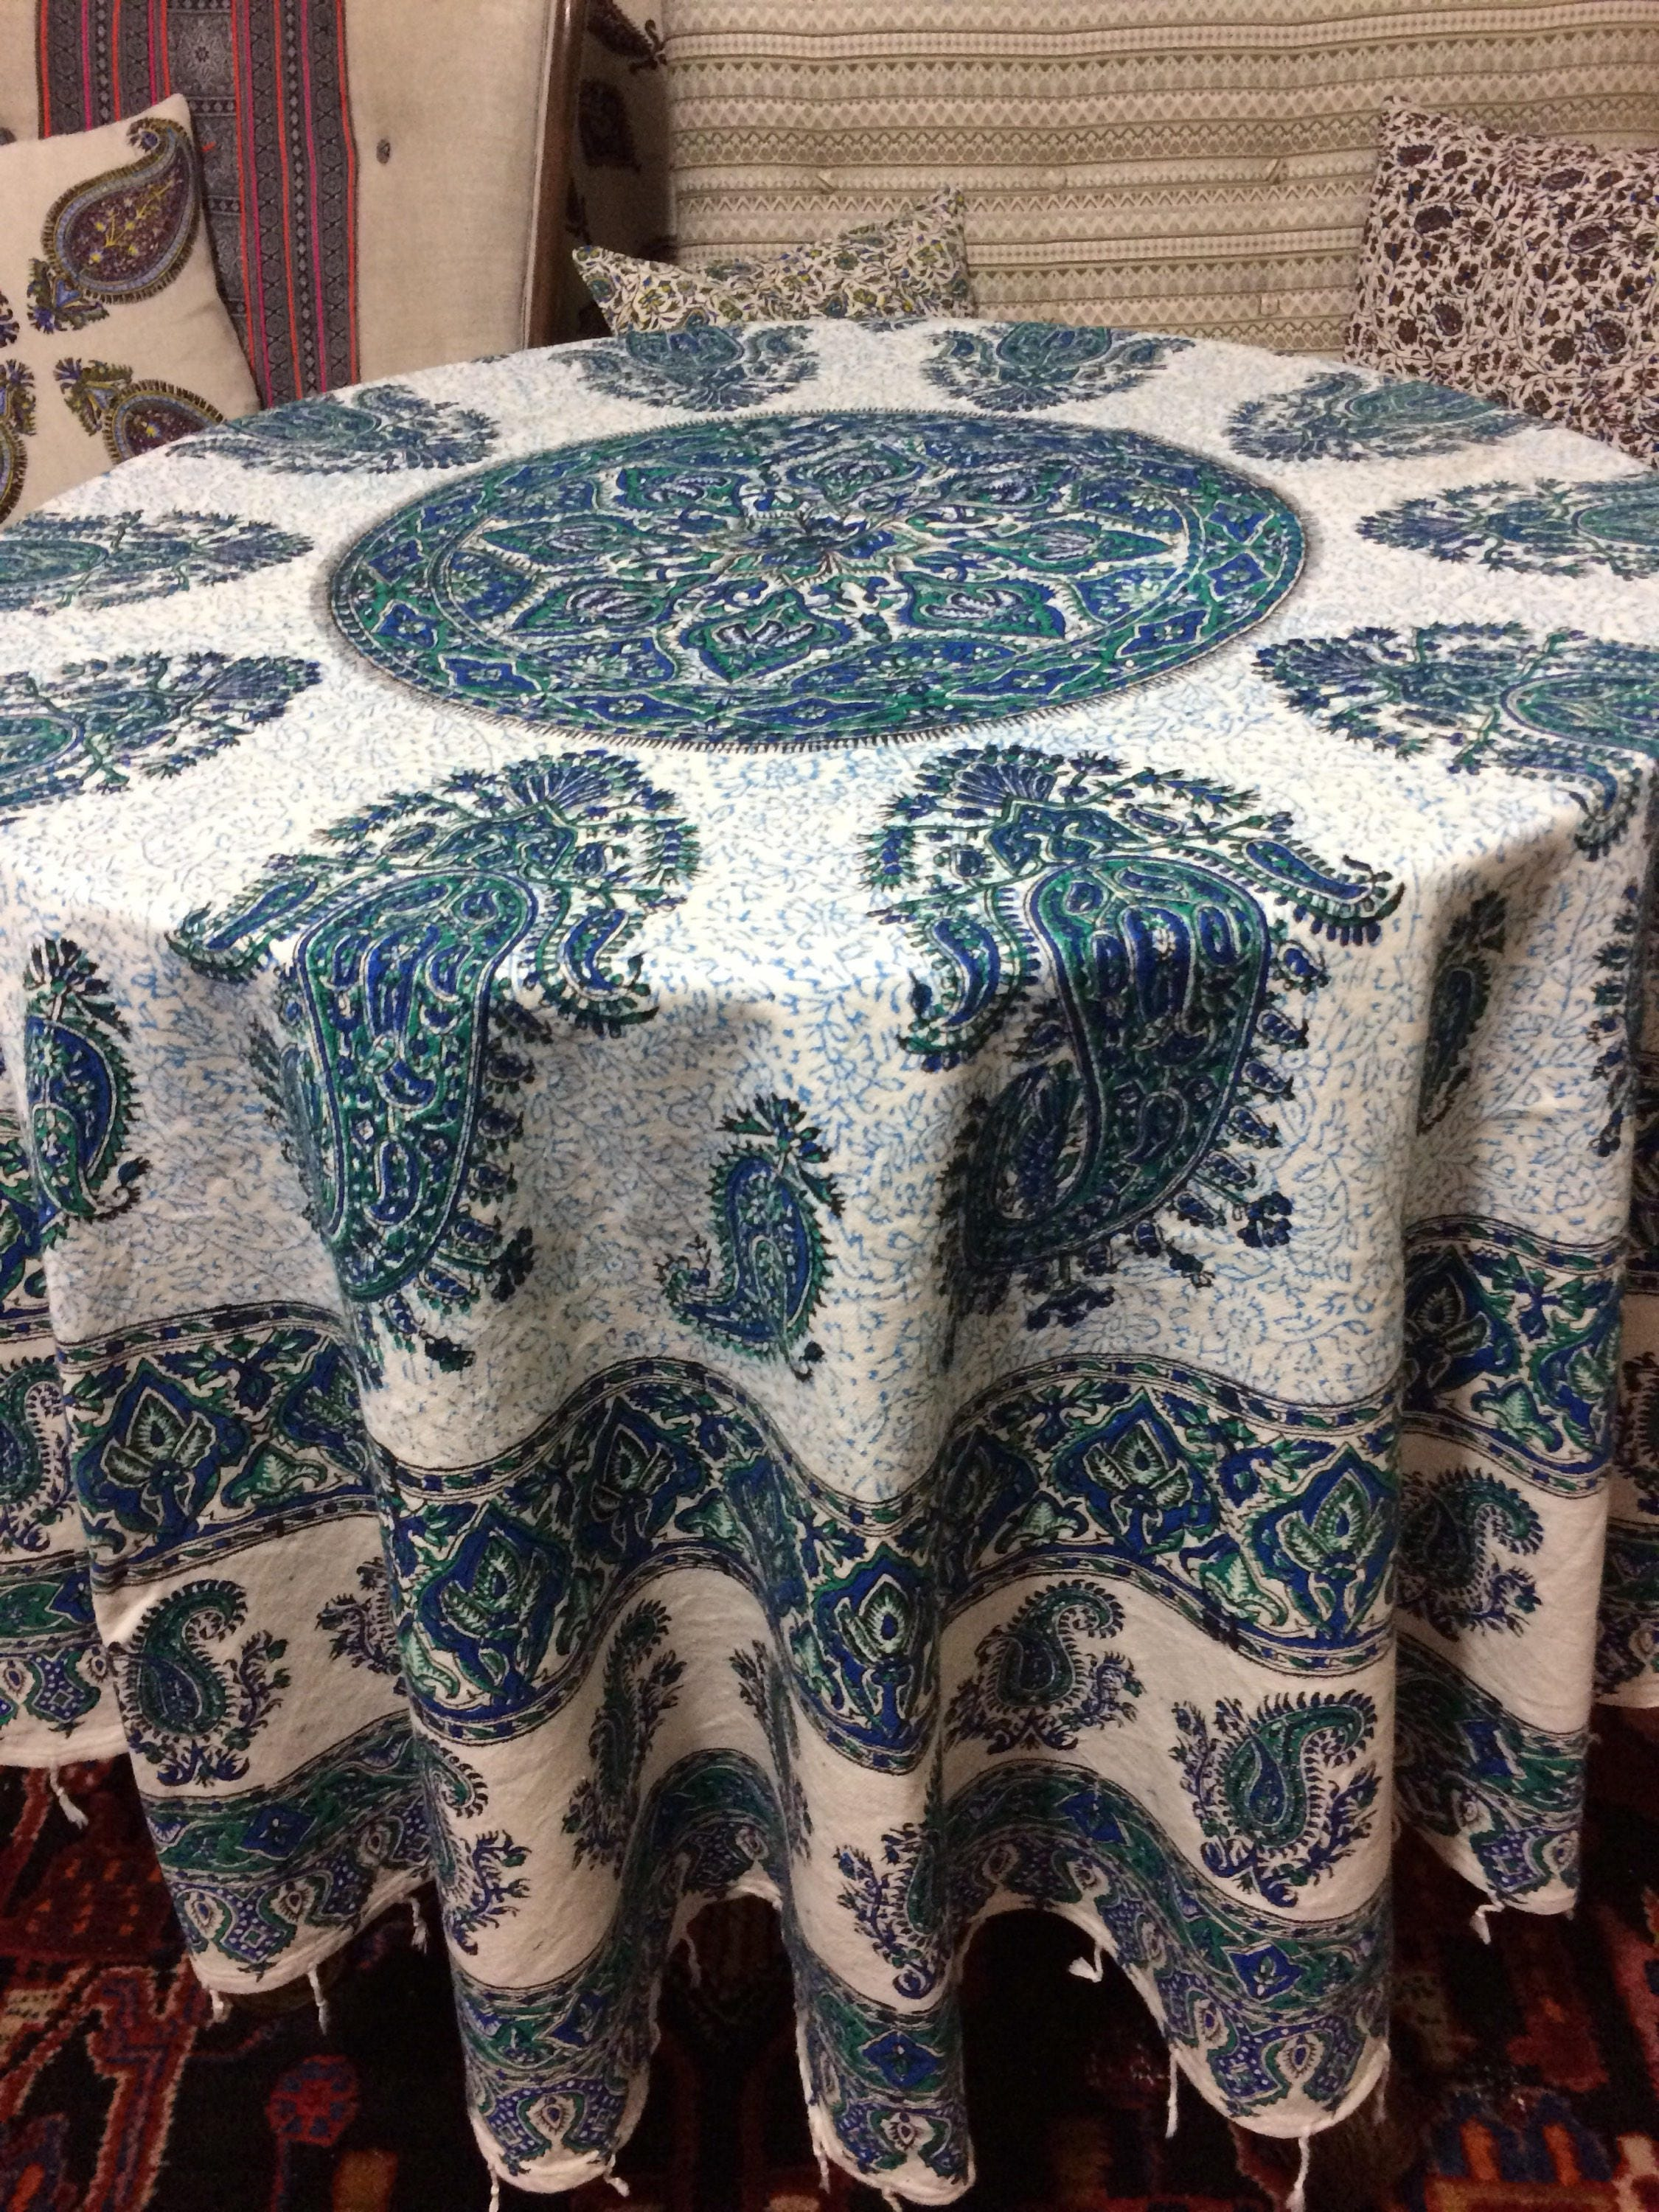 Handcrafted 70 Inches Round Tablecloth Block Printed Calico Fabric With Natural Dyes Mandala Tapestry With Tassels